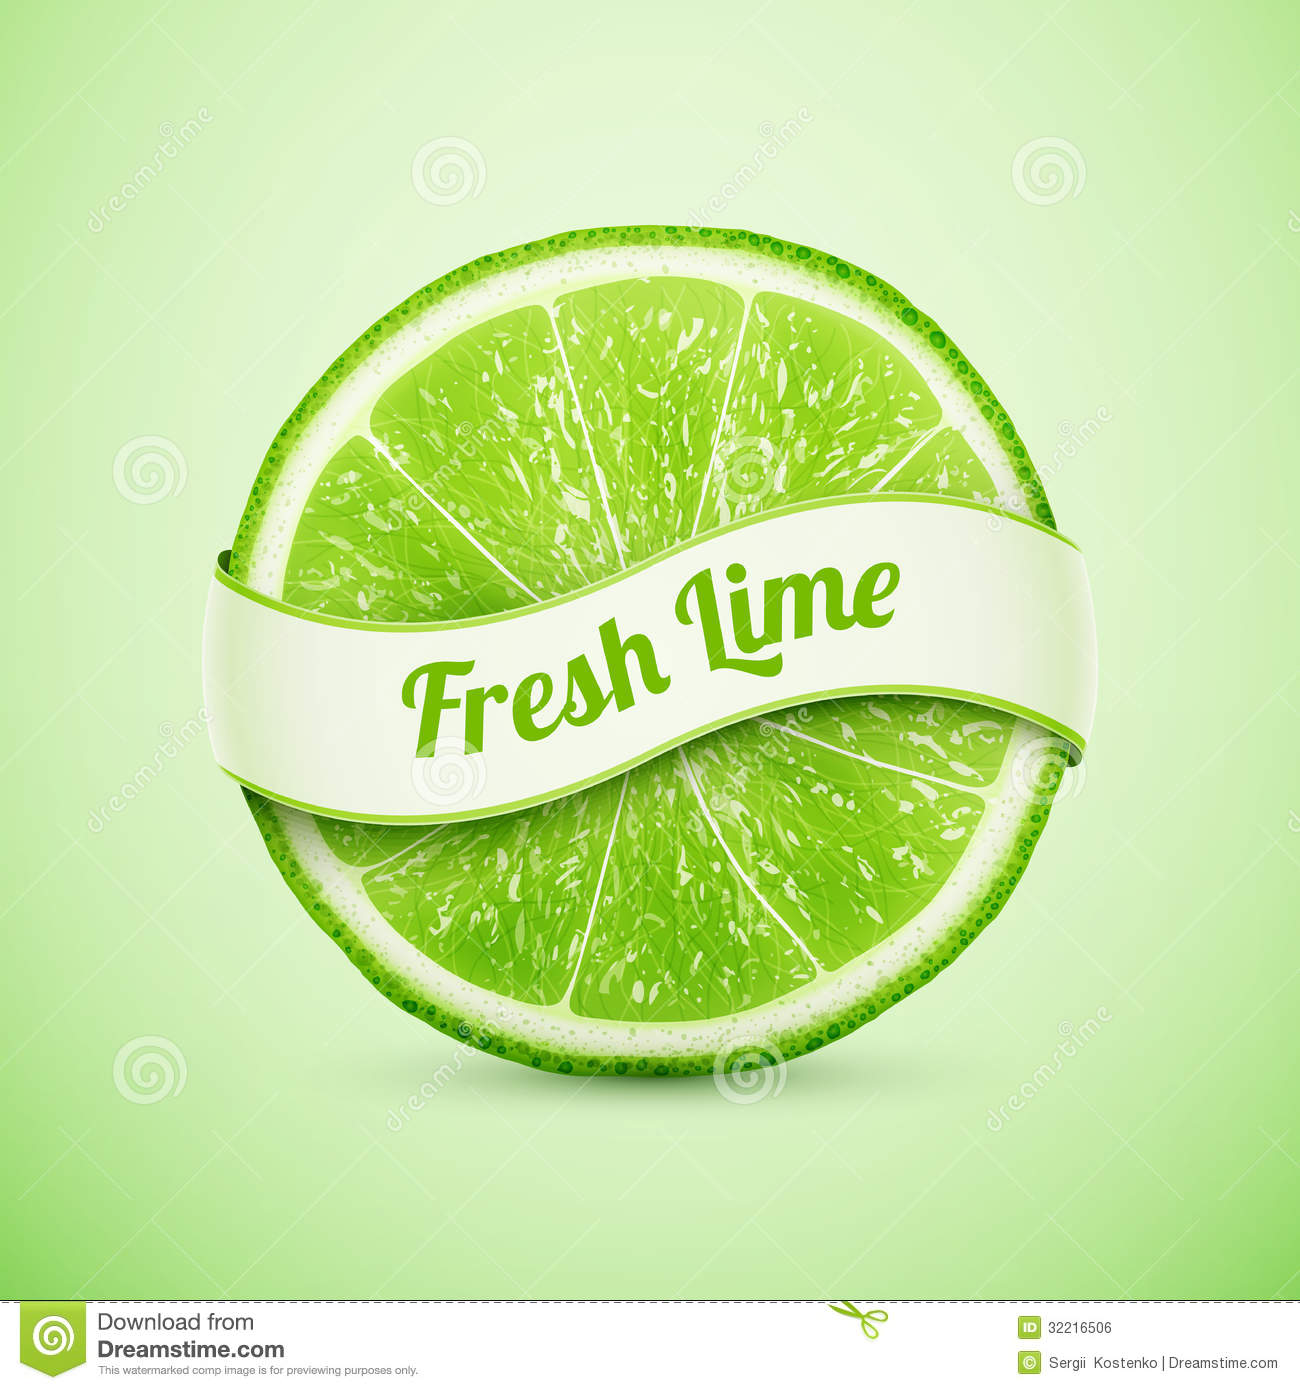 Fresh lime with ribbon